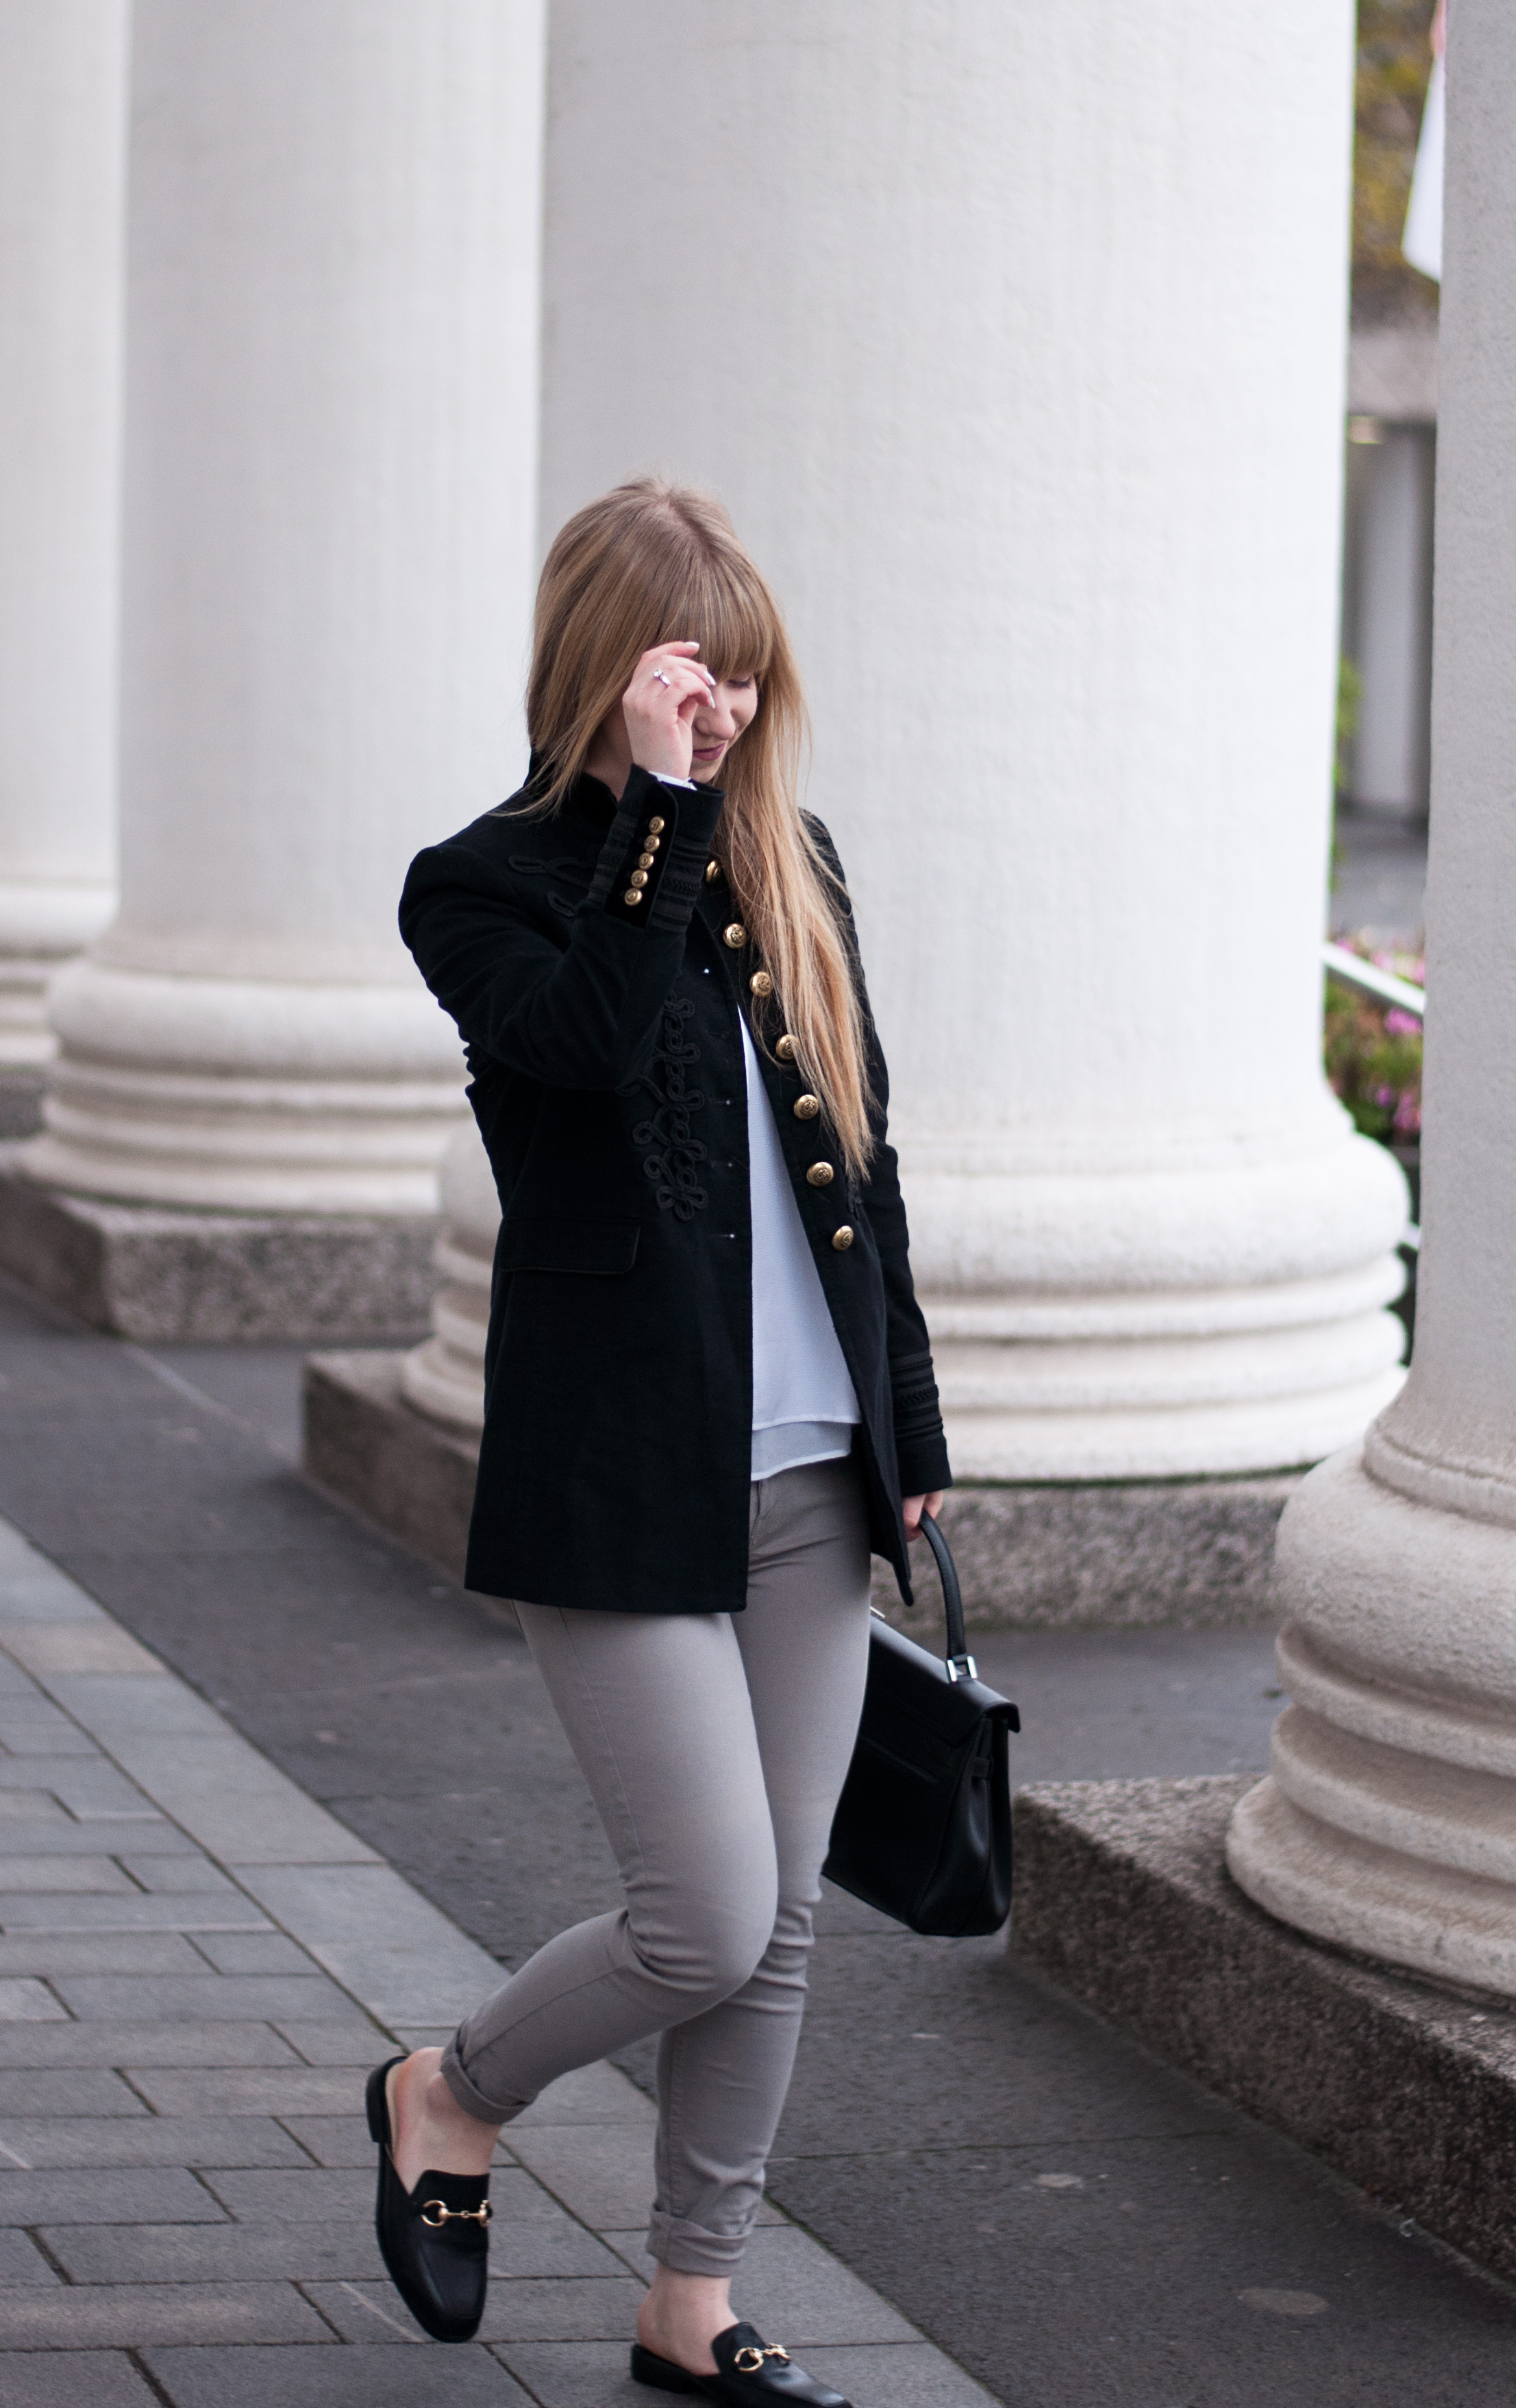 outfit-modeblogger-mules-gucci-style-zaful-black-military-coat-zara-mantel-skinny-jeans-winter-look-duisburg-laraira-2